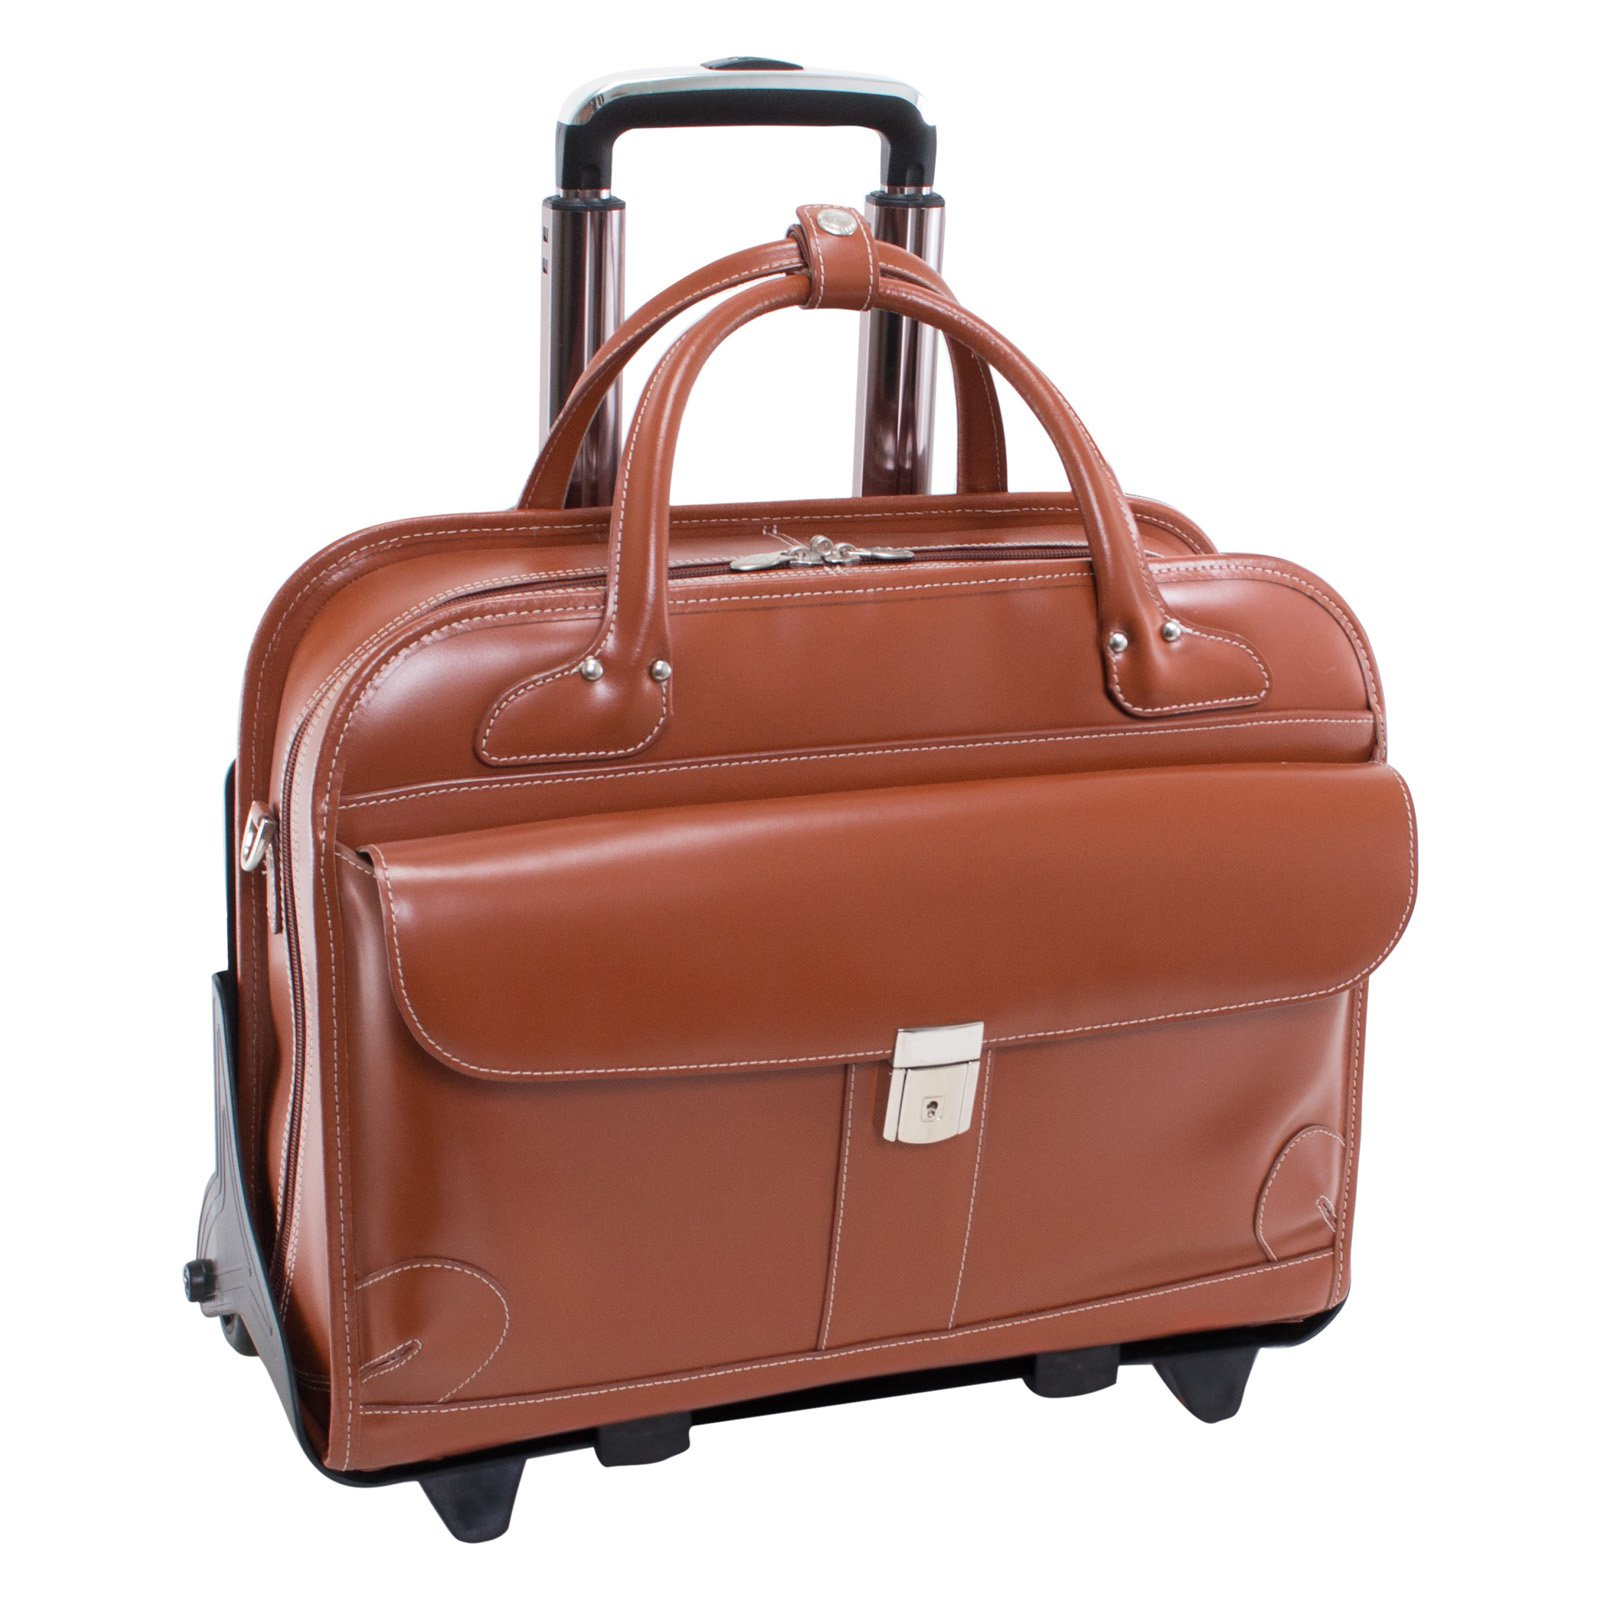 McKlein USA Lakewood Leather Fly-Through Checkpoint-Friendly Detachable-Wheeled Ladies Briefcase